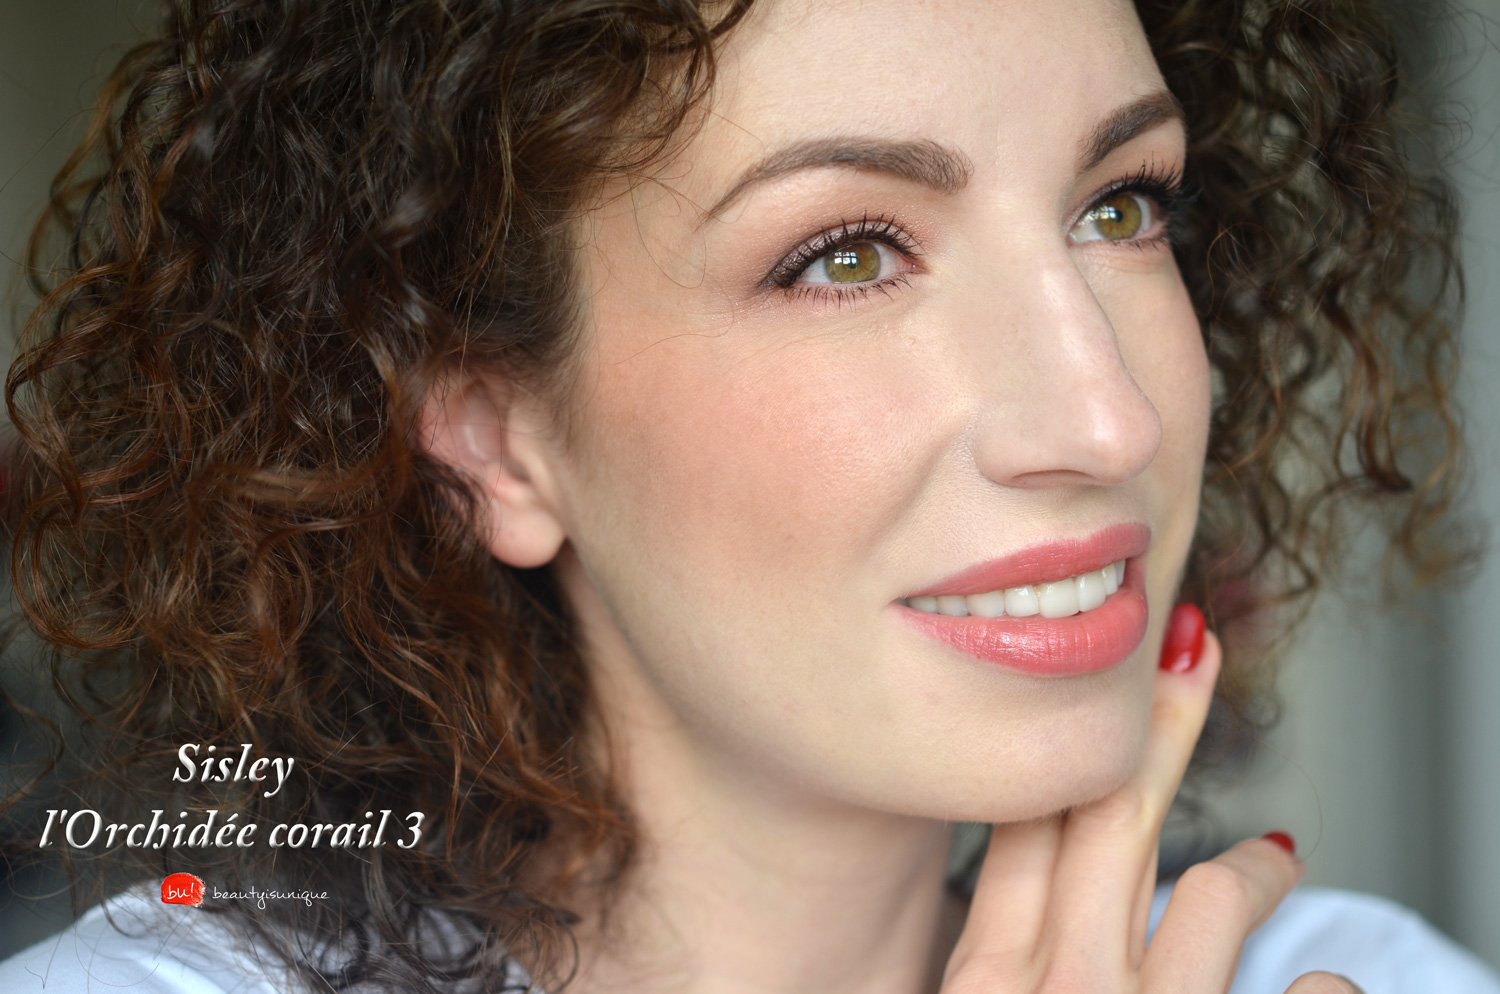 Sisley l'Orchidee-corail-3-swatches